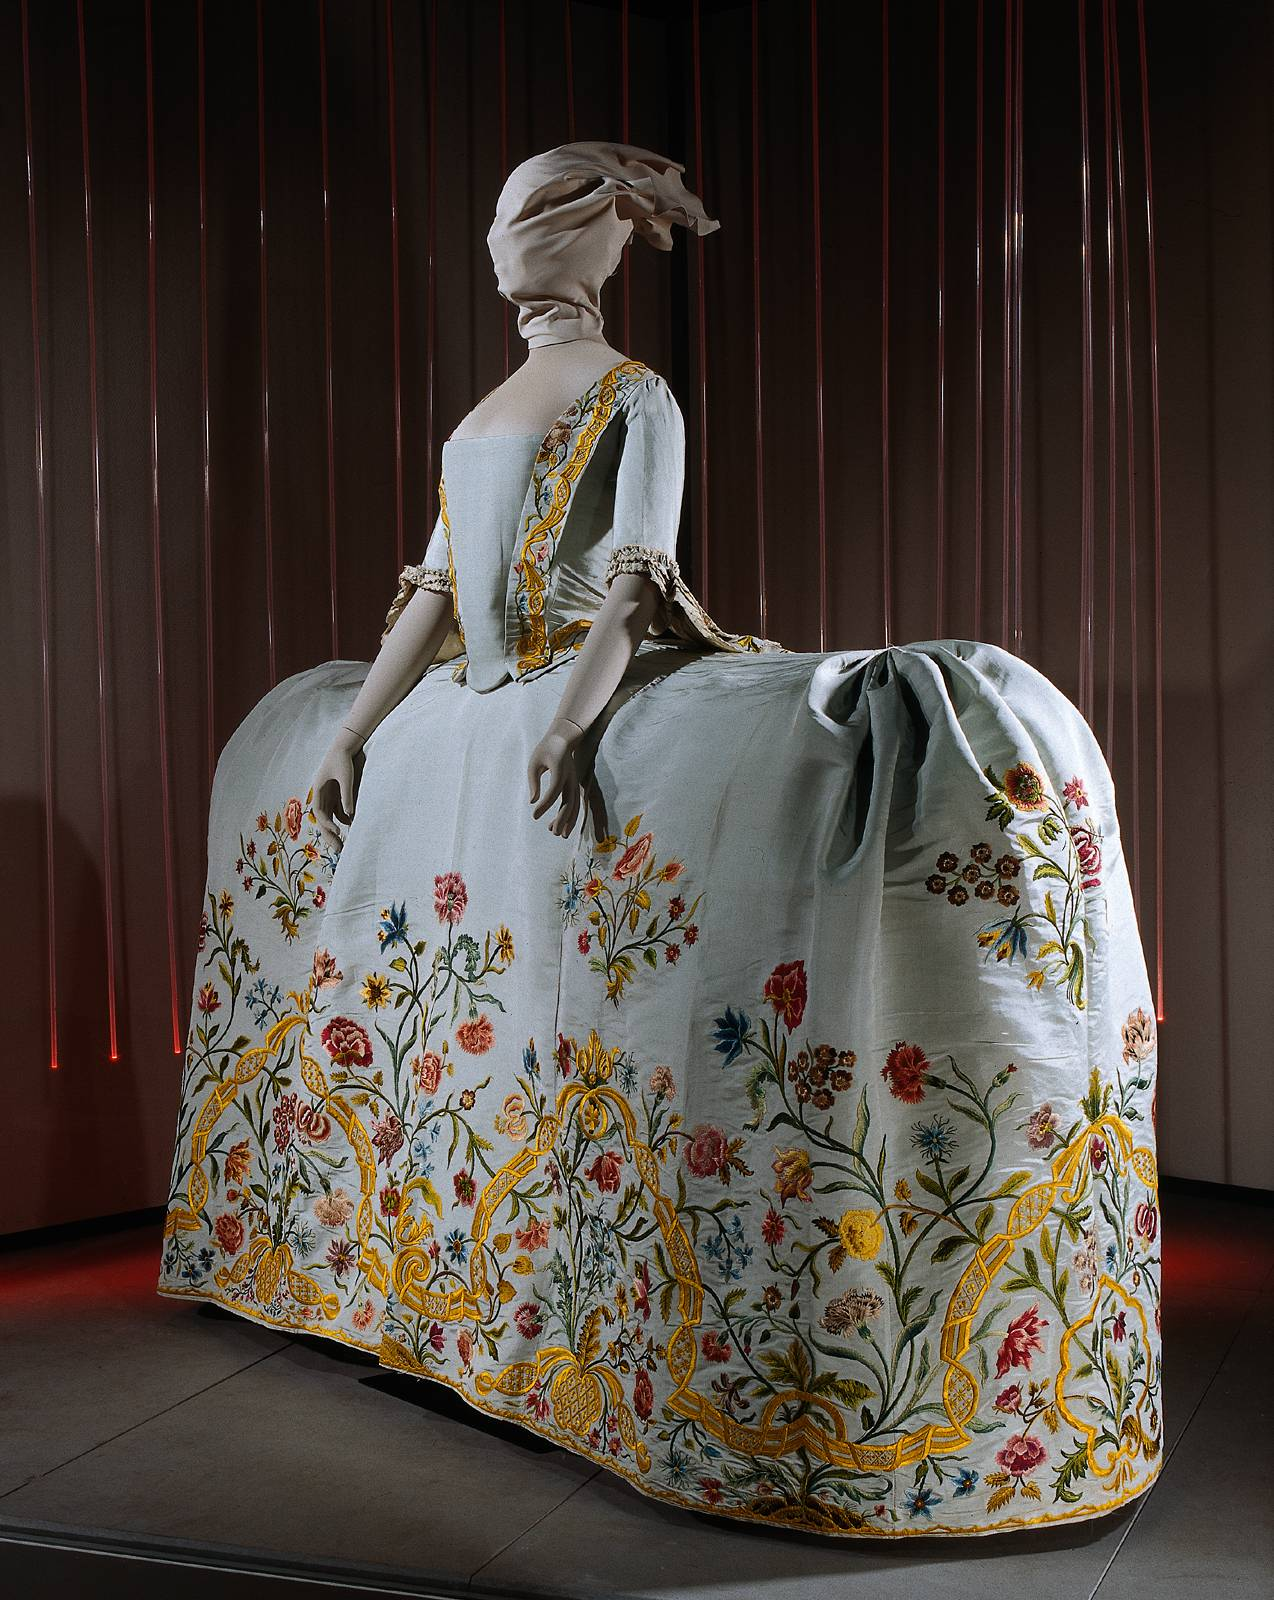 18th century costume archives embroidered dutch wedding for 18th century wedding dress